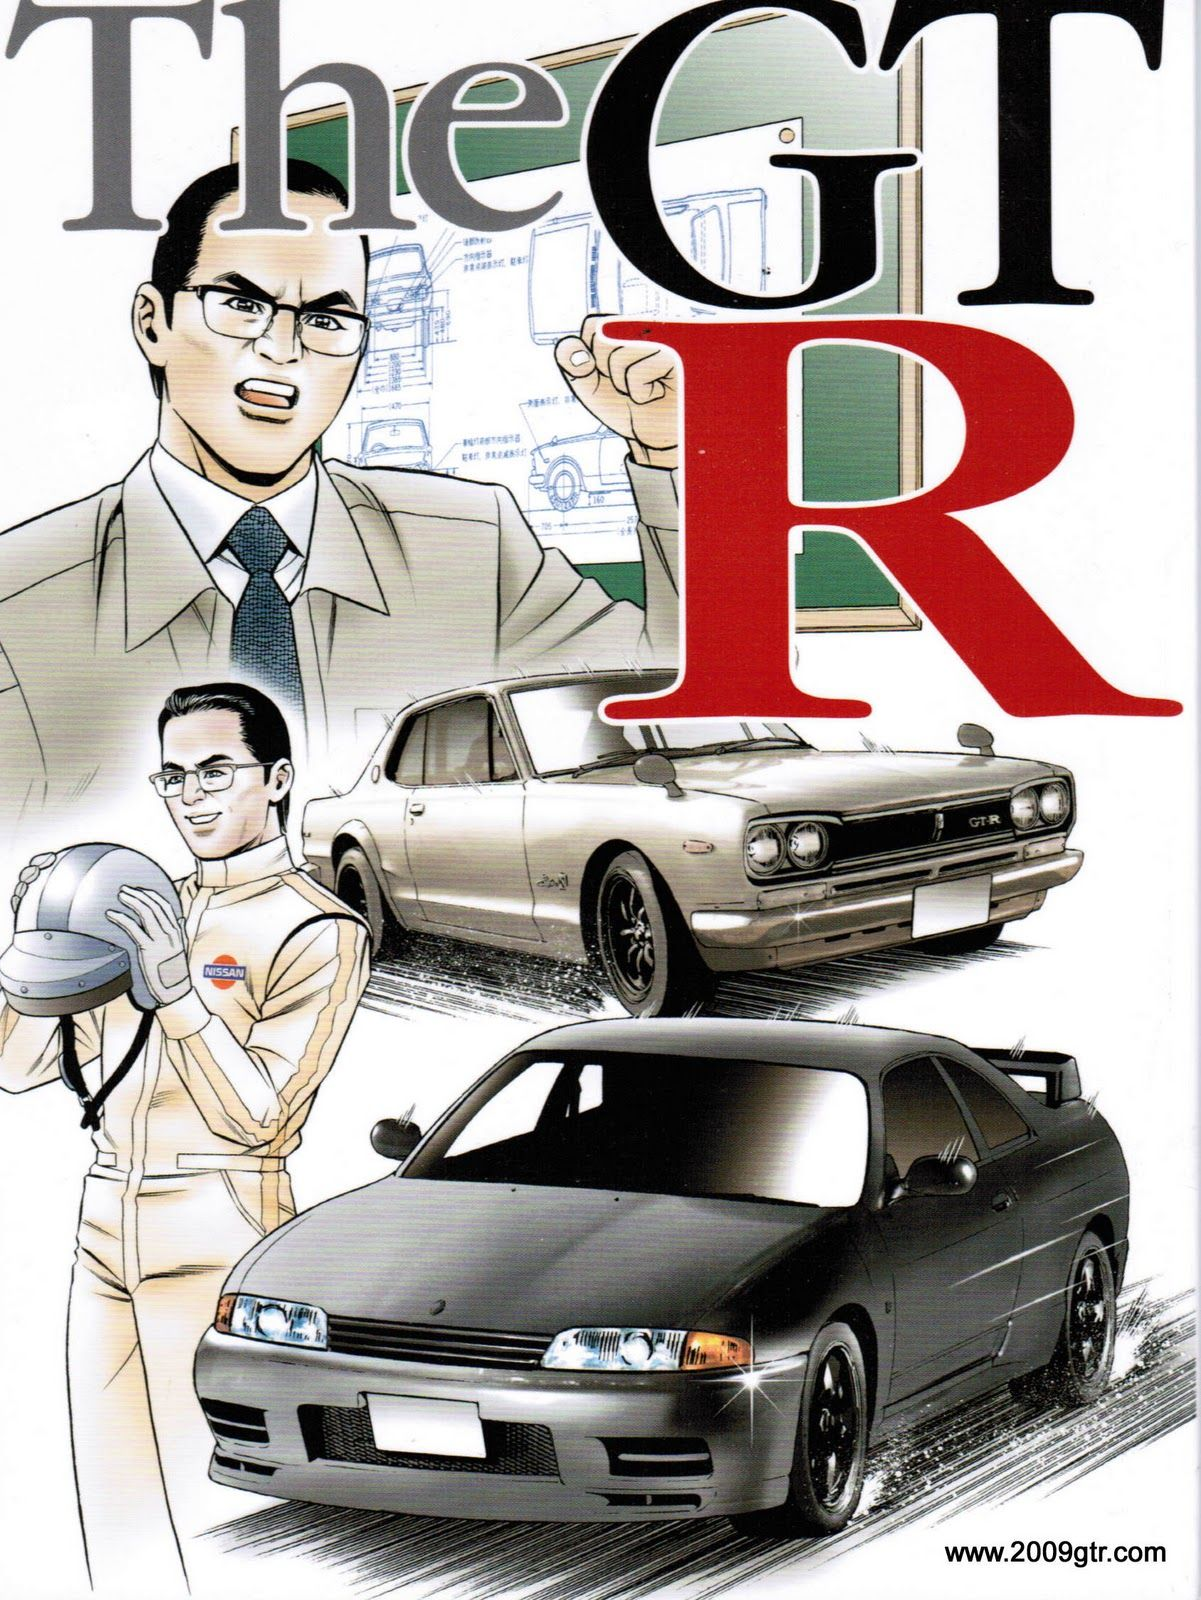 The legendary GT R is featured in this manga series. It